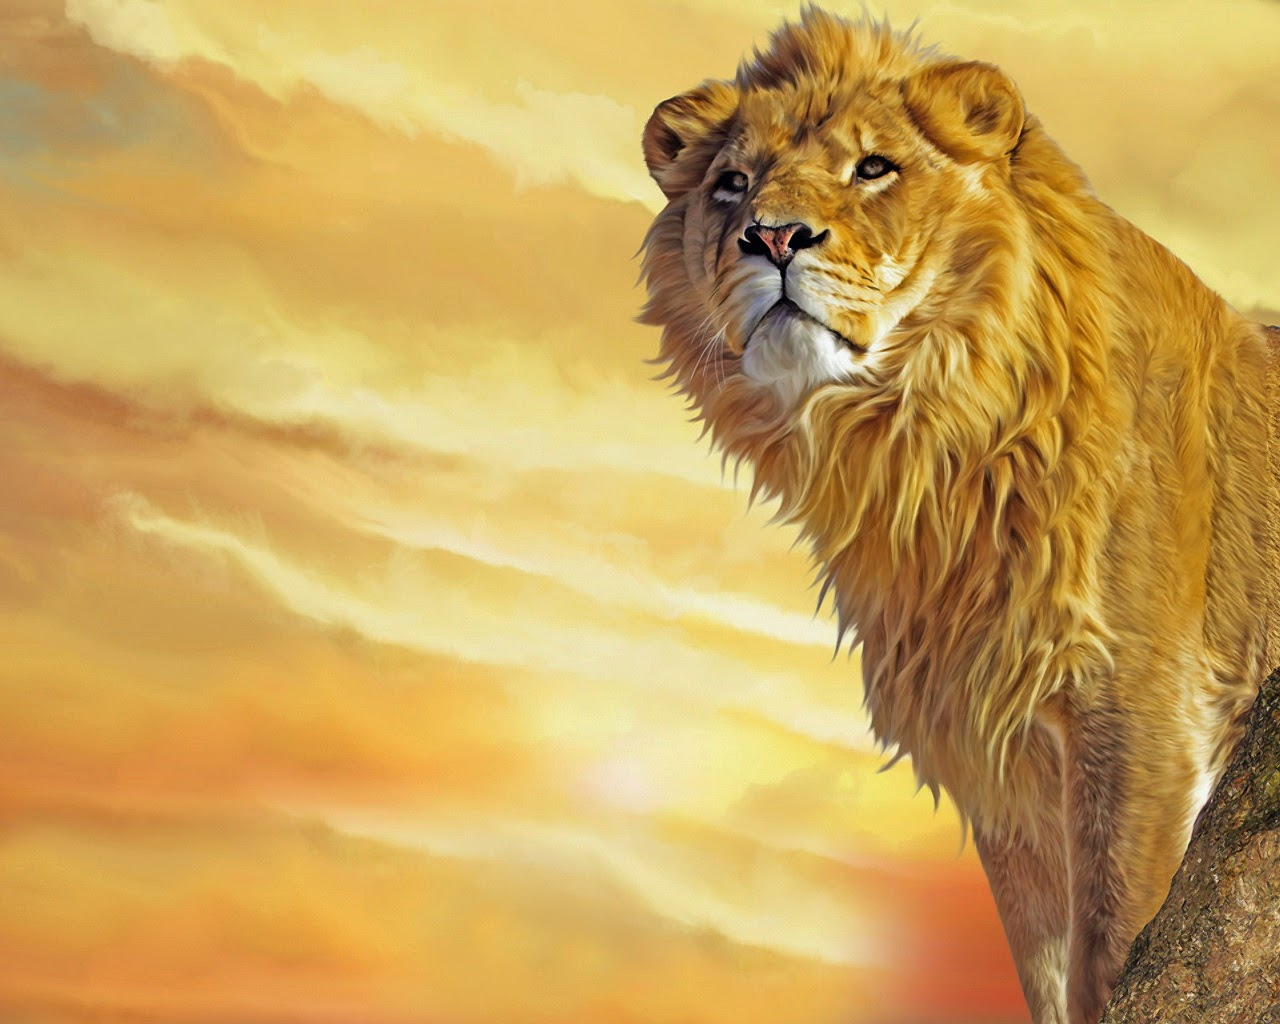 King Of Jungle Lion Wallpaper Image Wallpaper Theme